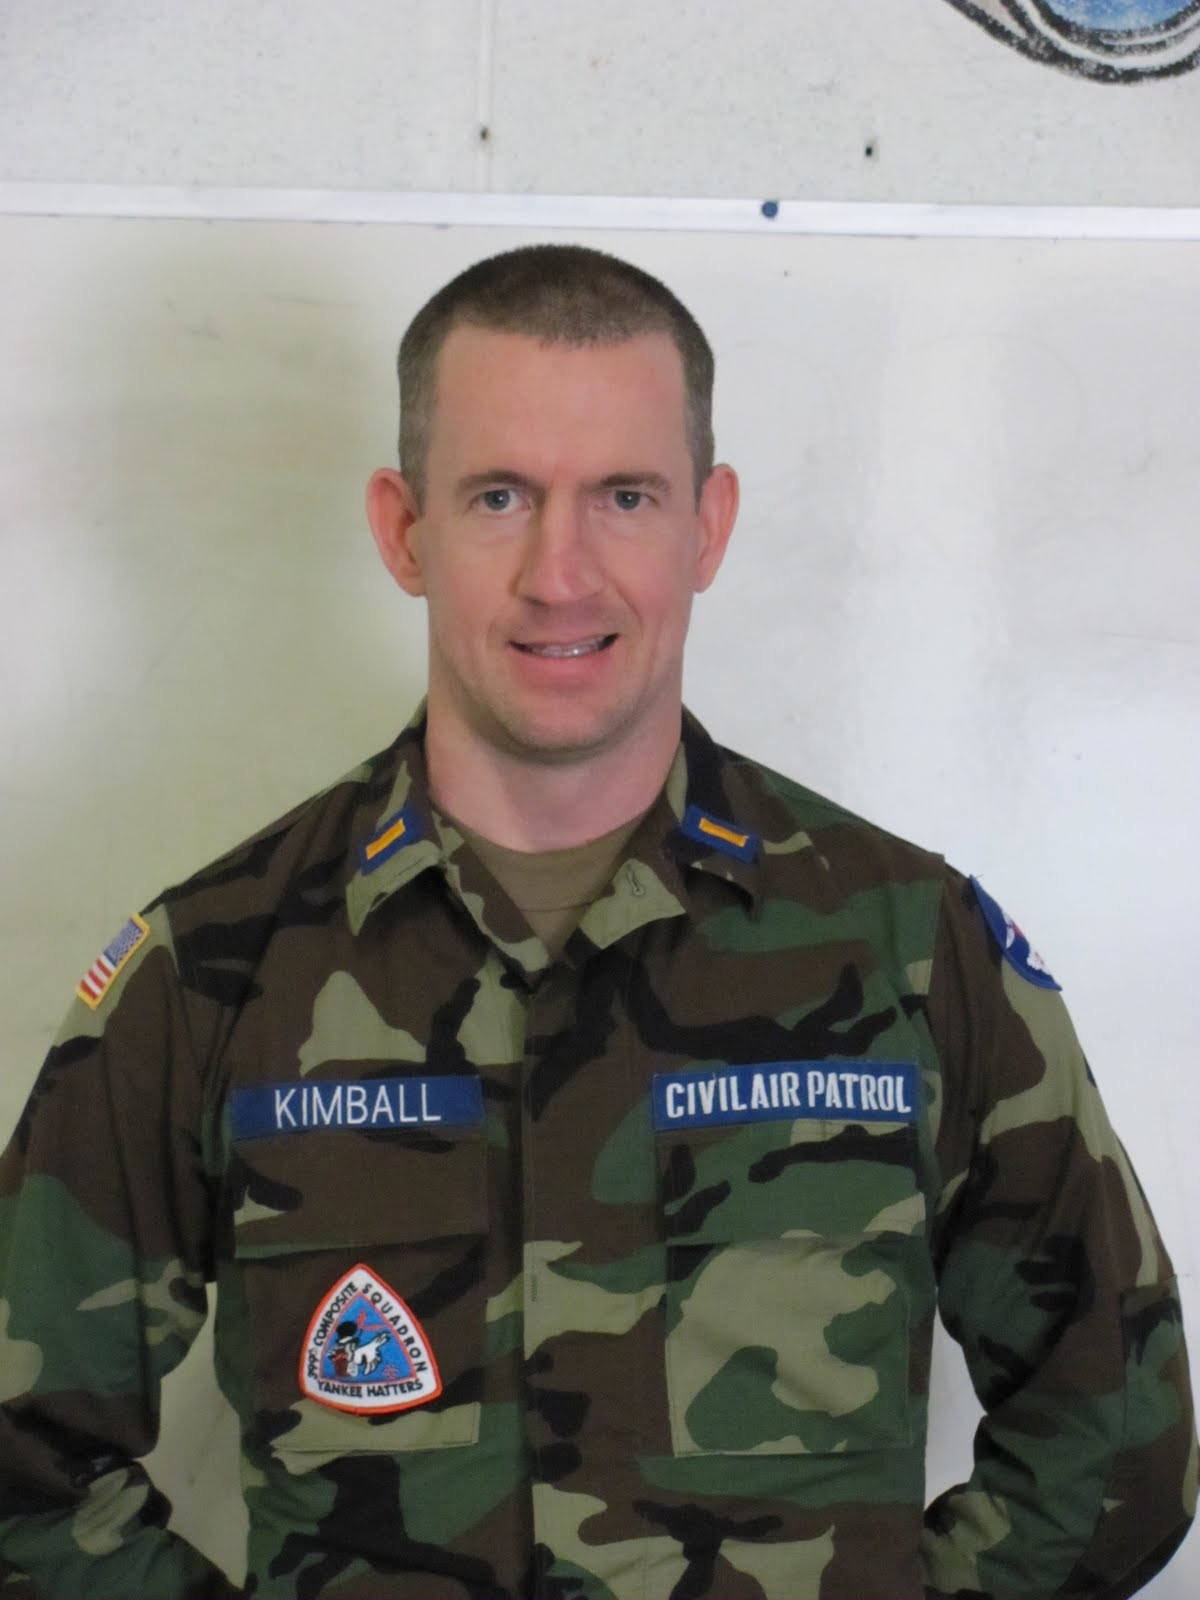 Senior Member 2nd Lt Thomas Q Kimball  Former member of Civil Air Patrol